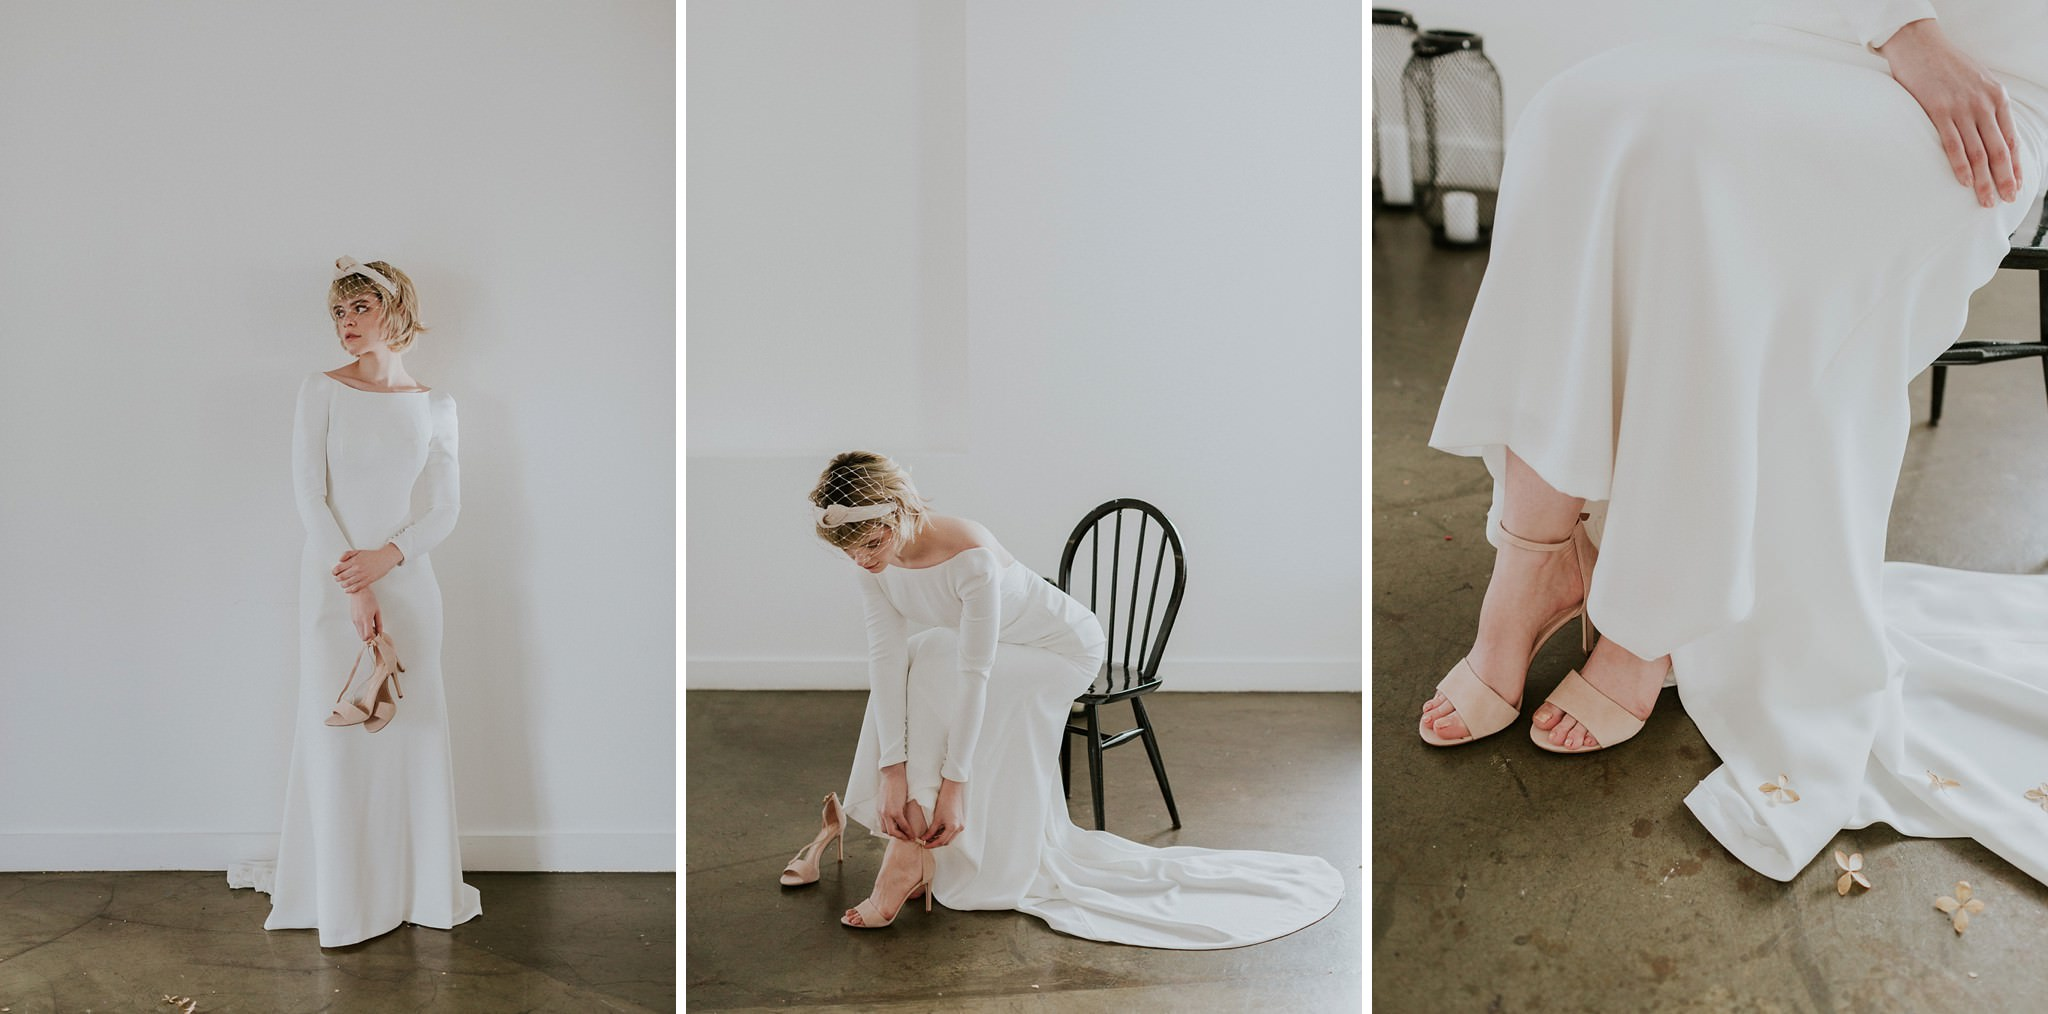 Minimalist wedding at Carousel London